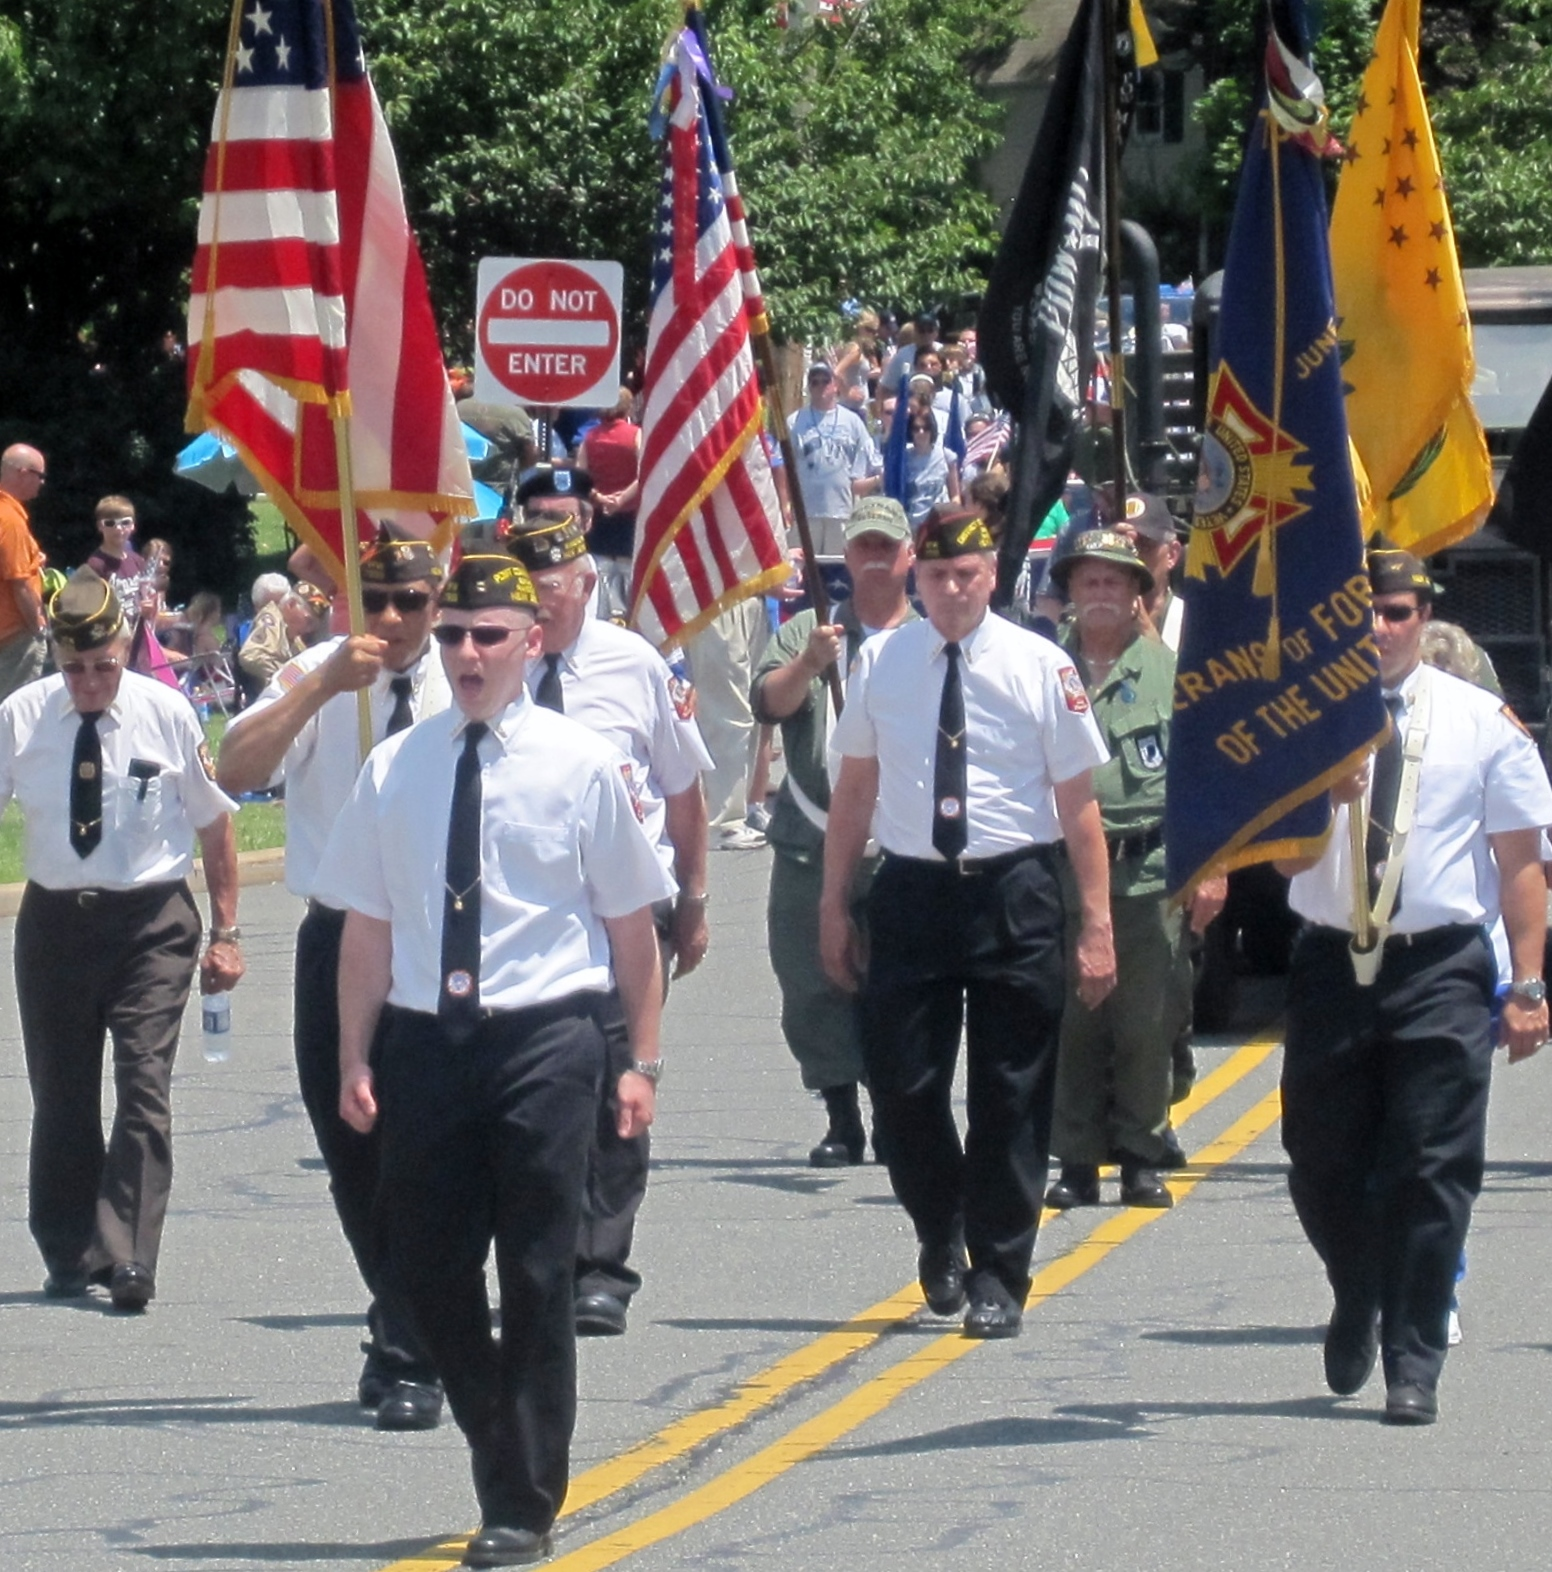 VFW July 4 Parade.JPG